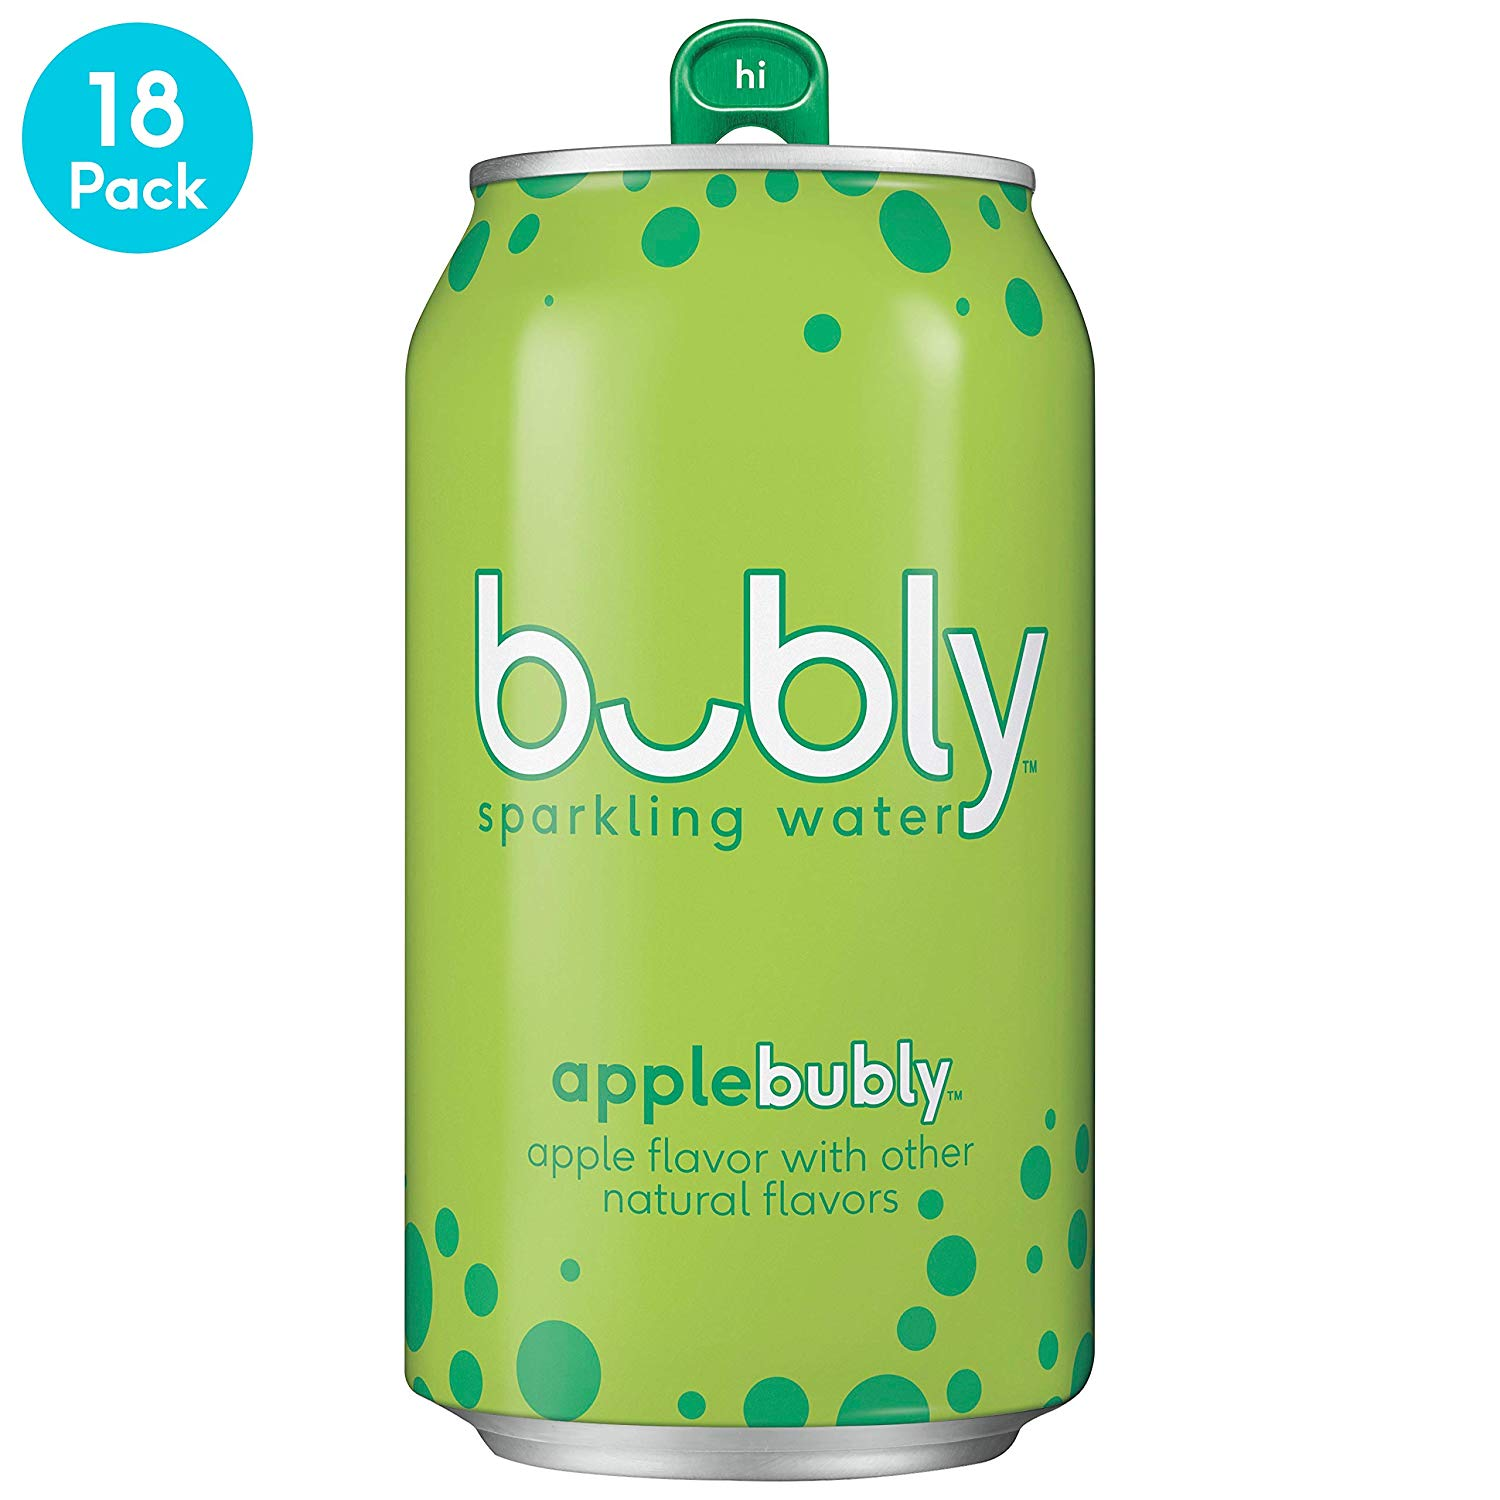 18 Pack bubly Sparkling Water from $4.37 with coupon!